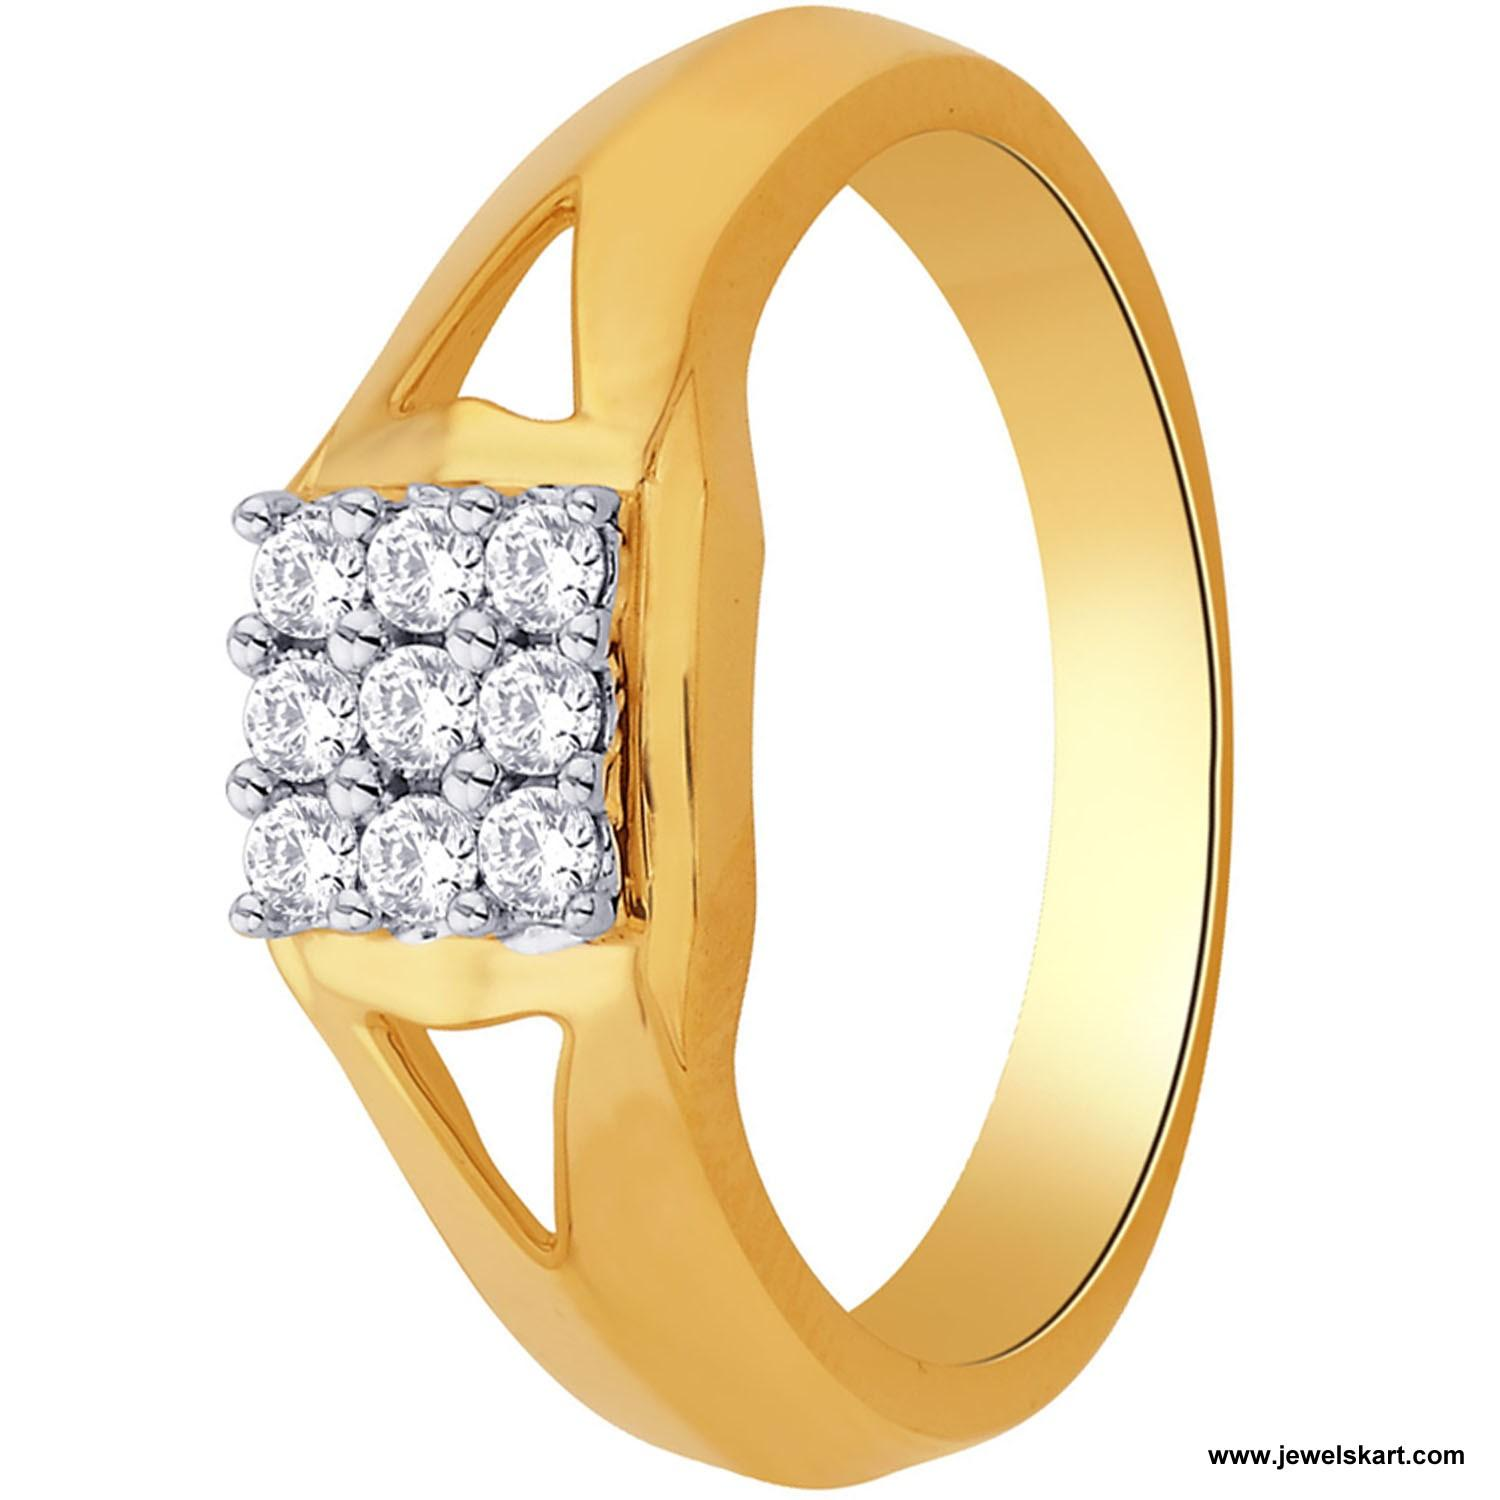 Sangini IDR00552 Gold, 4.68 gm, 0.31 ct, Diamond, Ladies Ring